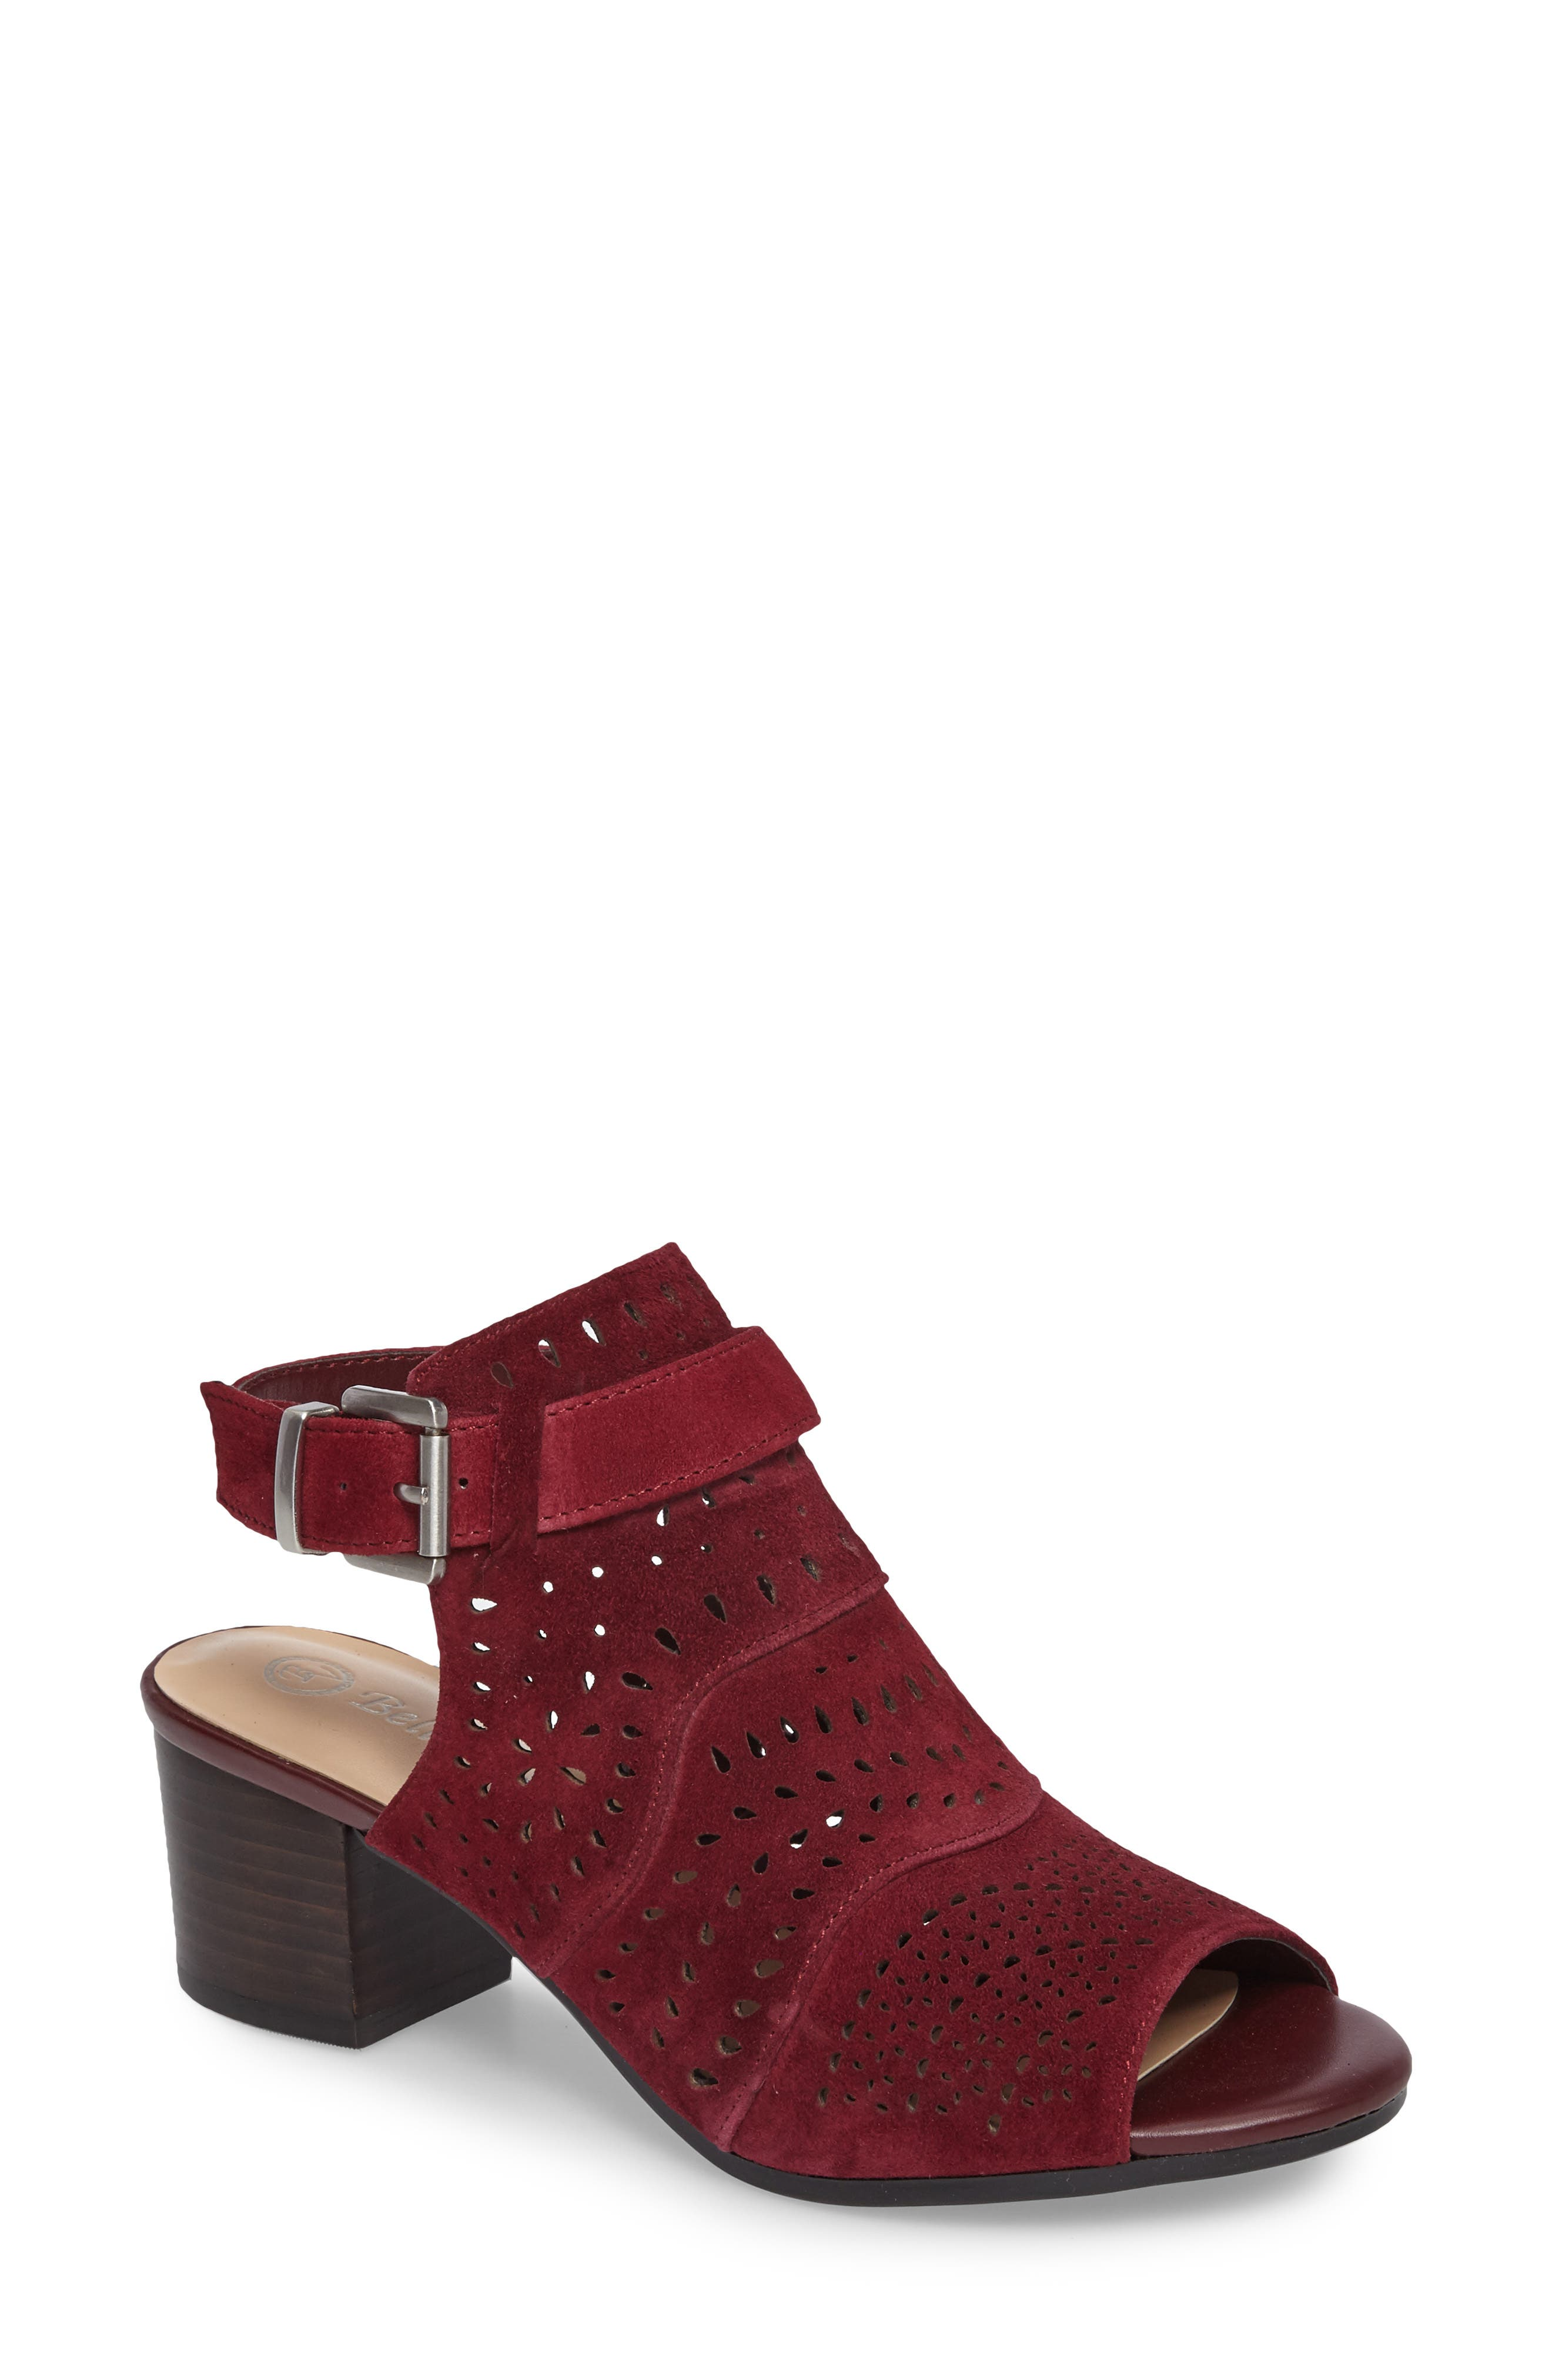 Fonda Perforated Sandal,                             Main thumbnail 1, color,                             Burgundy Suede